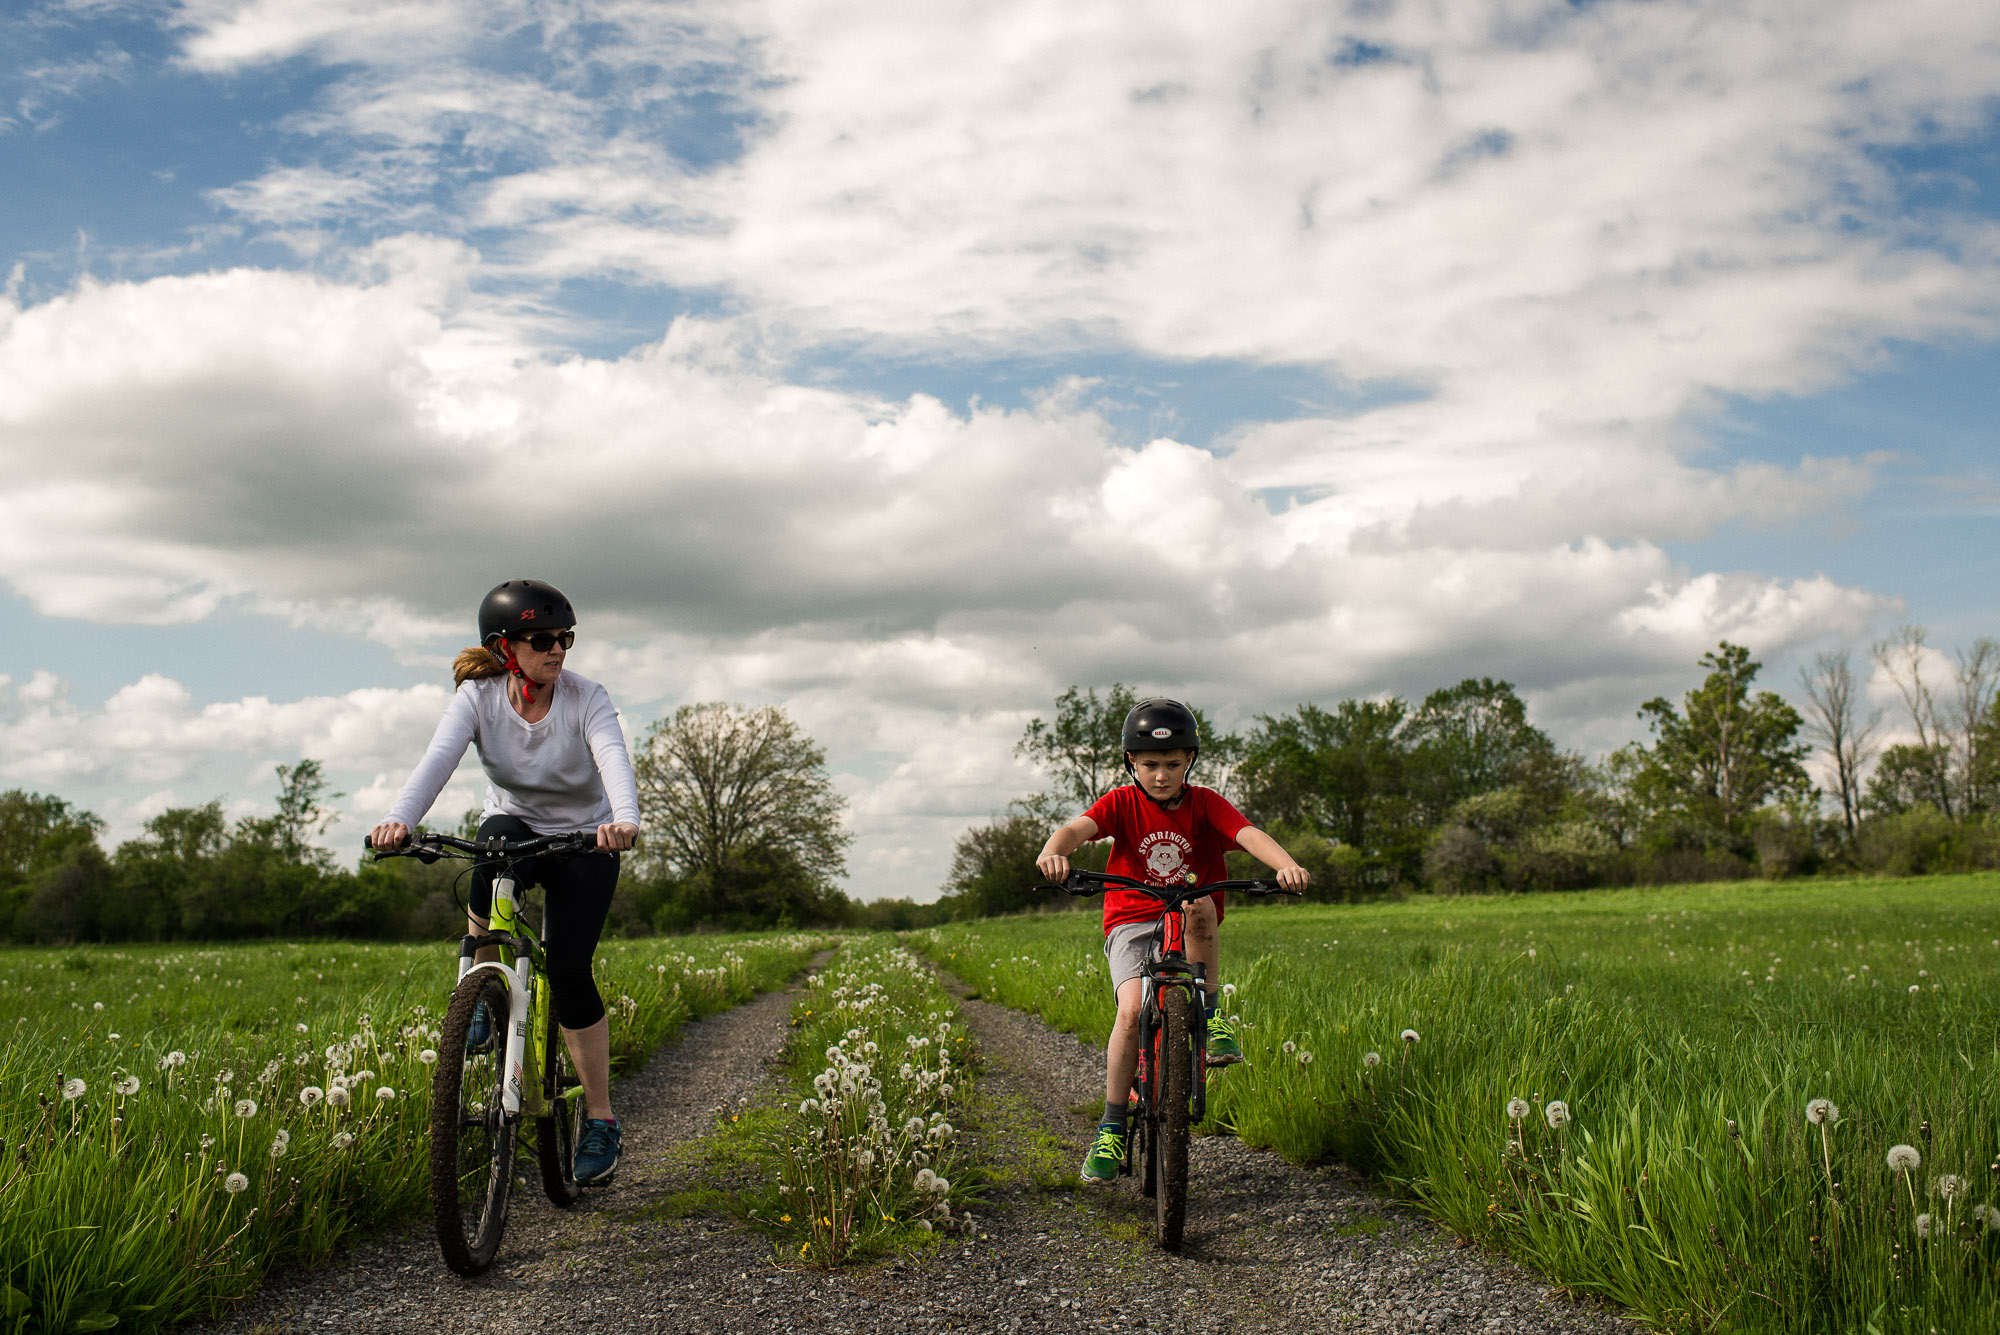 mother and son ride bikes through green field